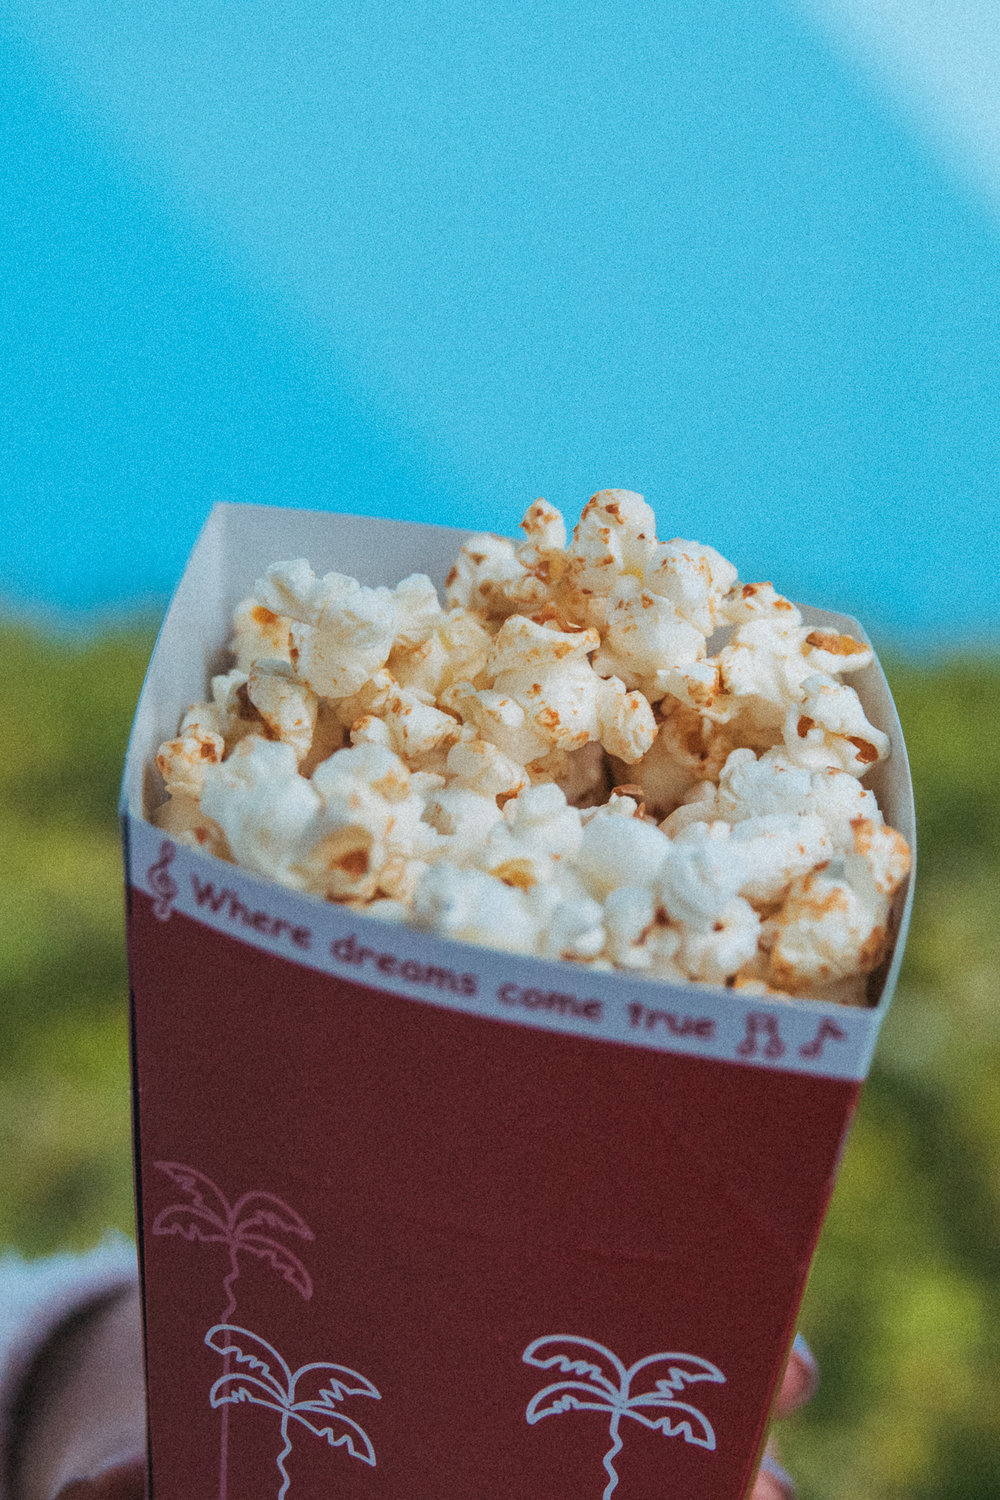 Soy Sauce & Butter Popcorn found next to Treasure Comet (¥310) Arguably the best flavor of popcorn found at TDR. I've tried to recreate this one at home and I've failed miserably. Till then I'll be dreaming of this out-of-this-world snack.